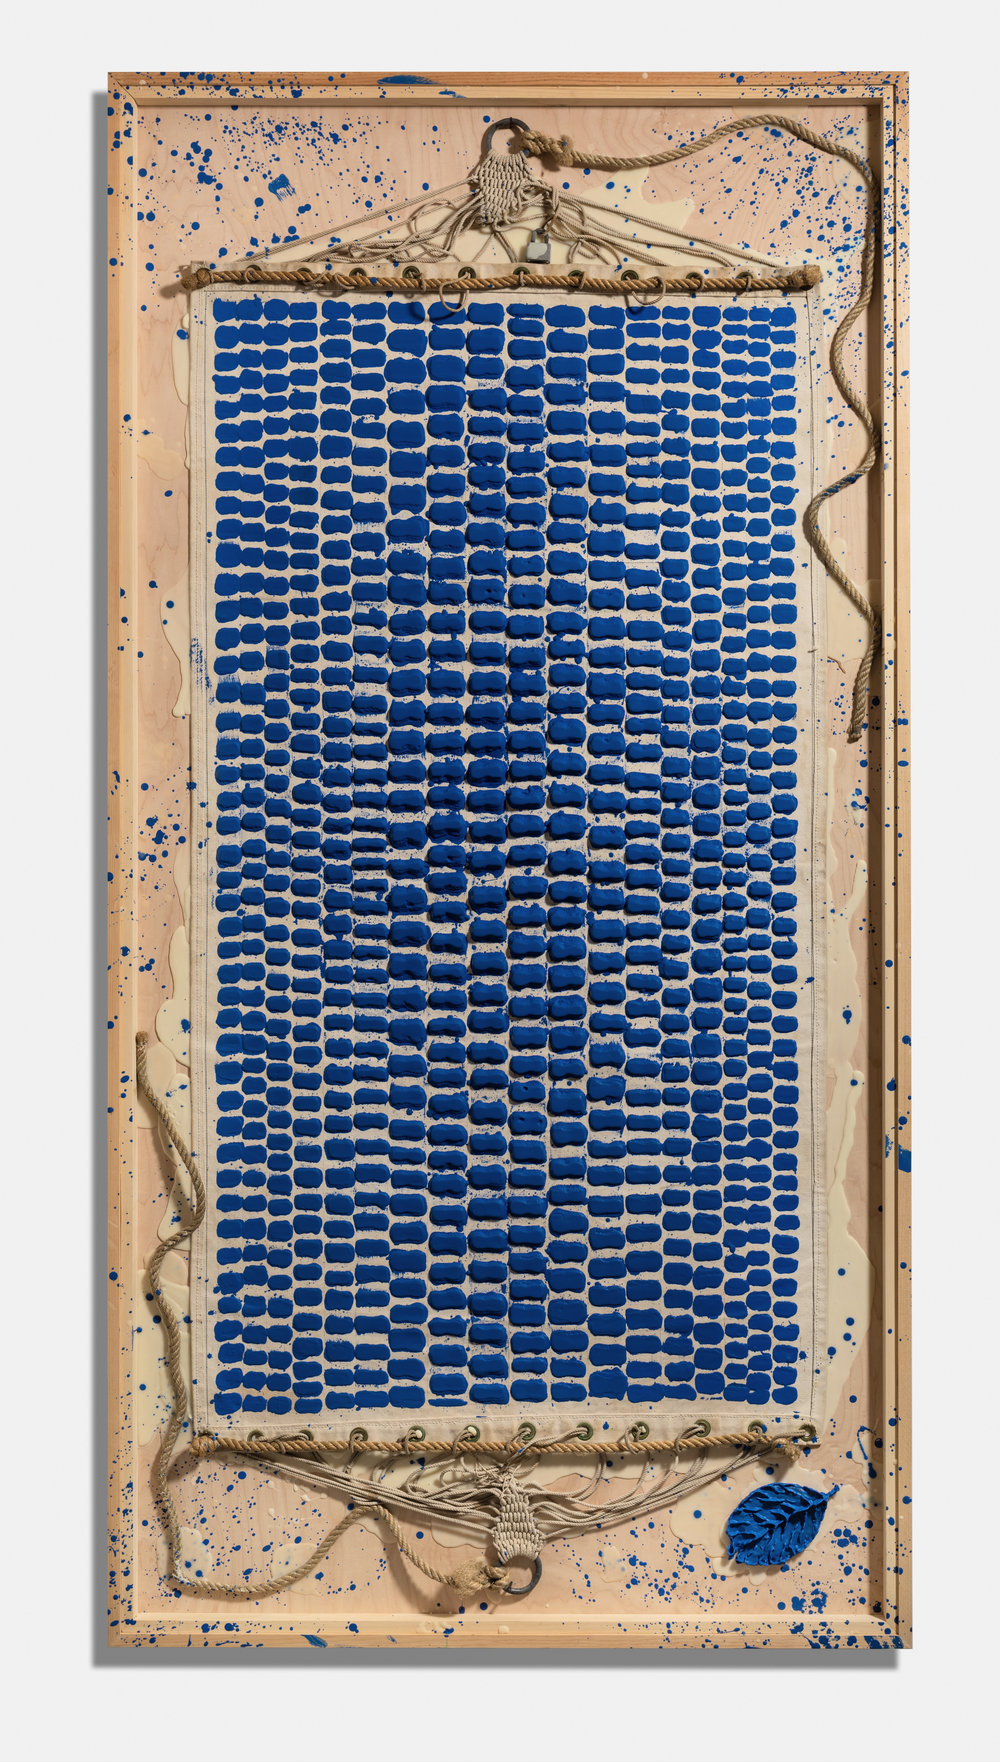 Ultra Marine , 2014, encaustic and hammock on panel,  97 1/2 x  49 1/2 x 4 1/2 inches